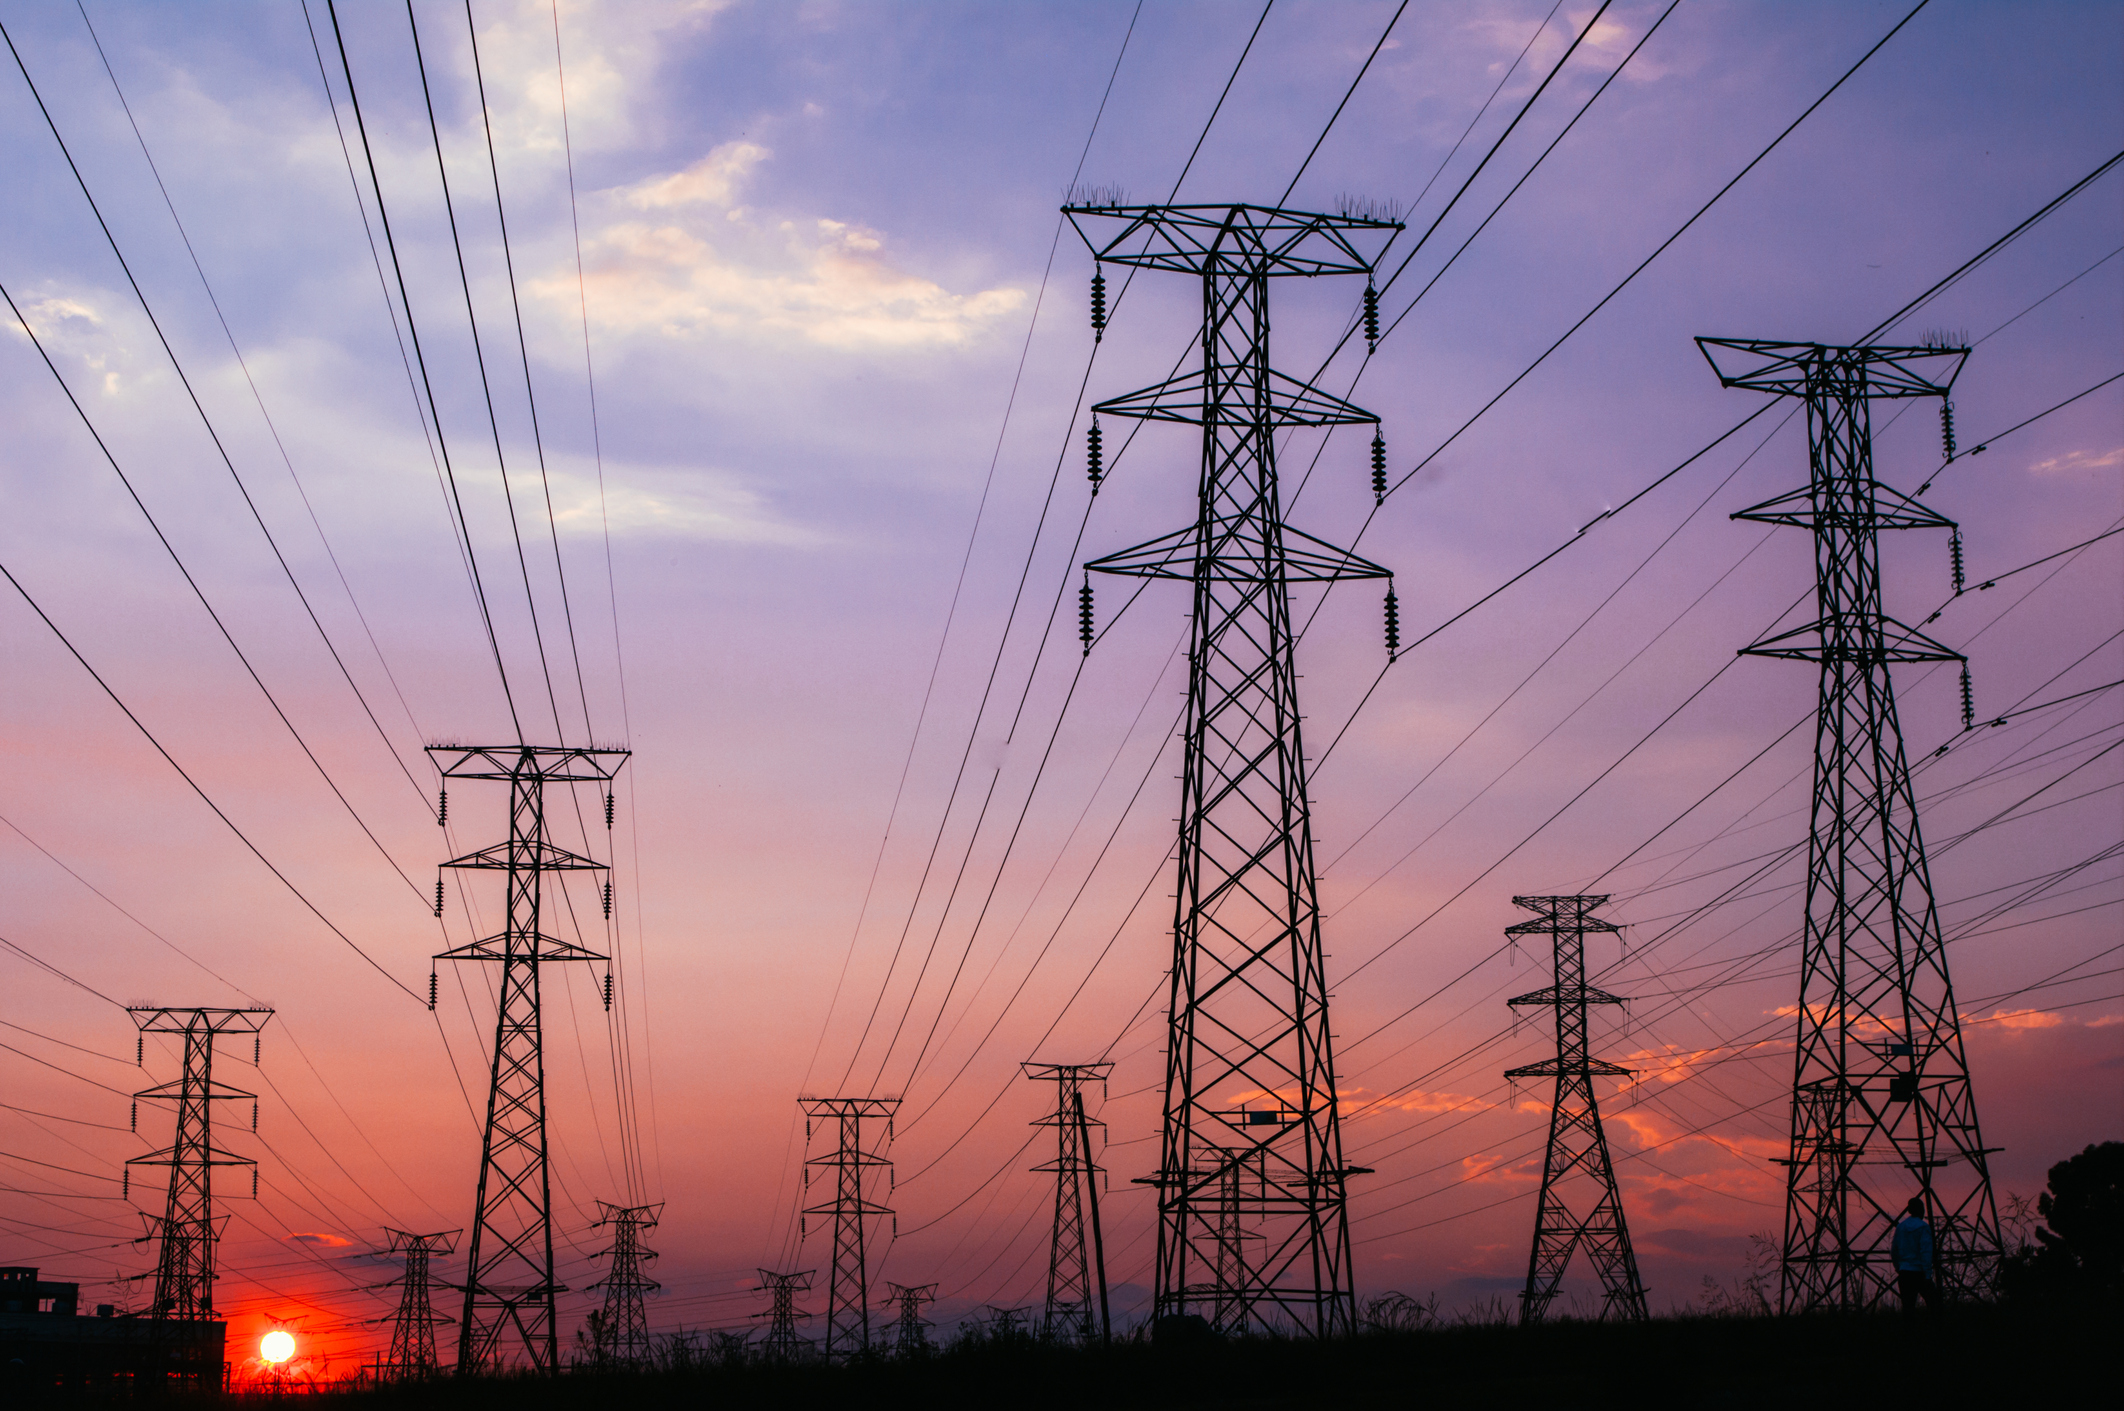 pylons and power cables stretching away into the sunset